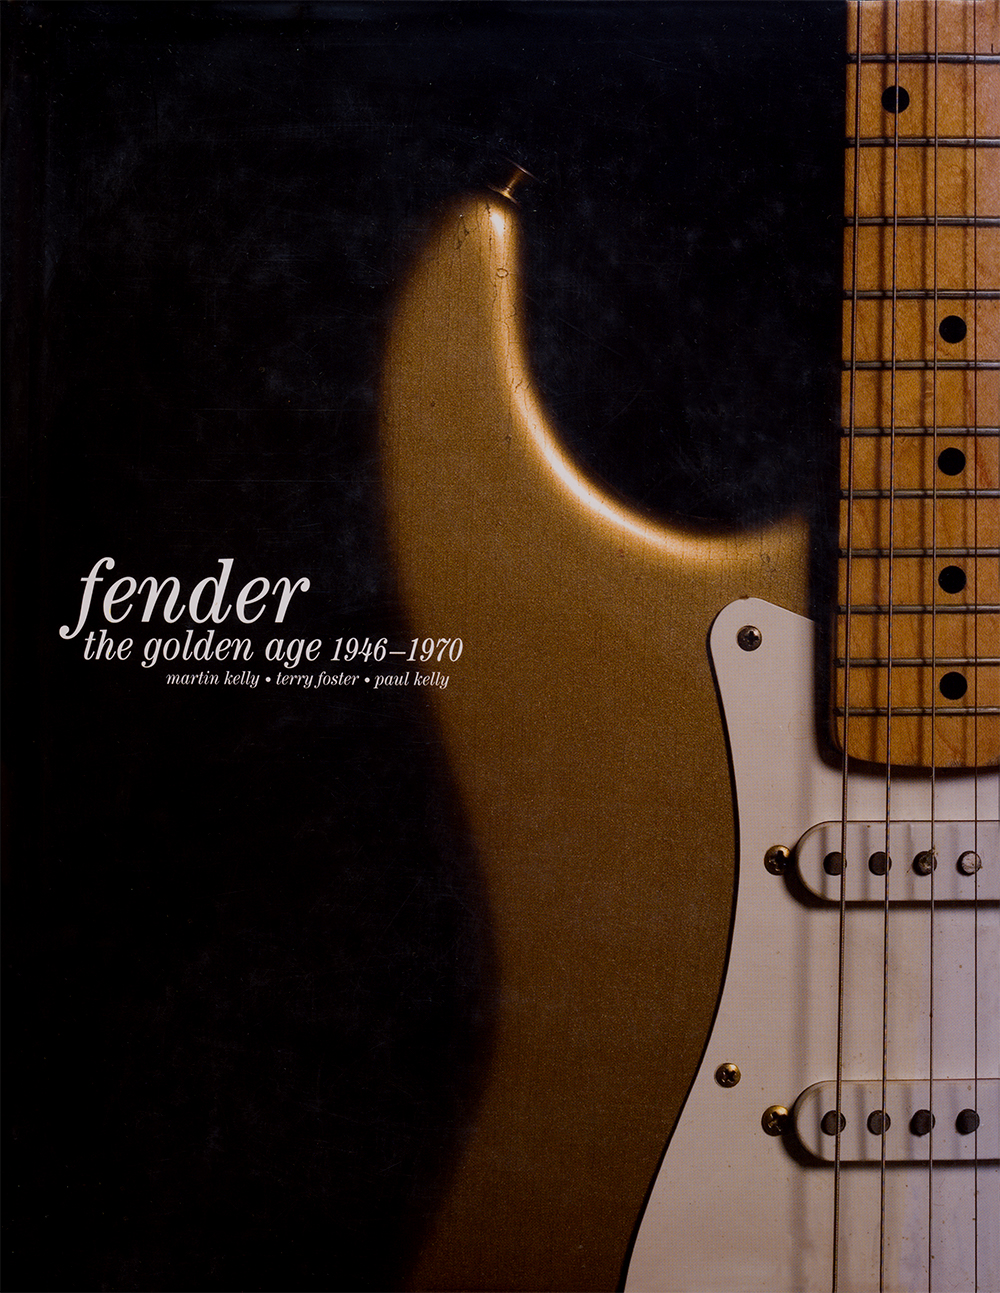 fender, the golden age, by martin kelley, terry foster, paul kelley